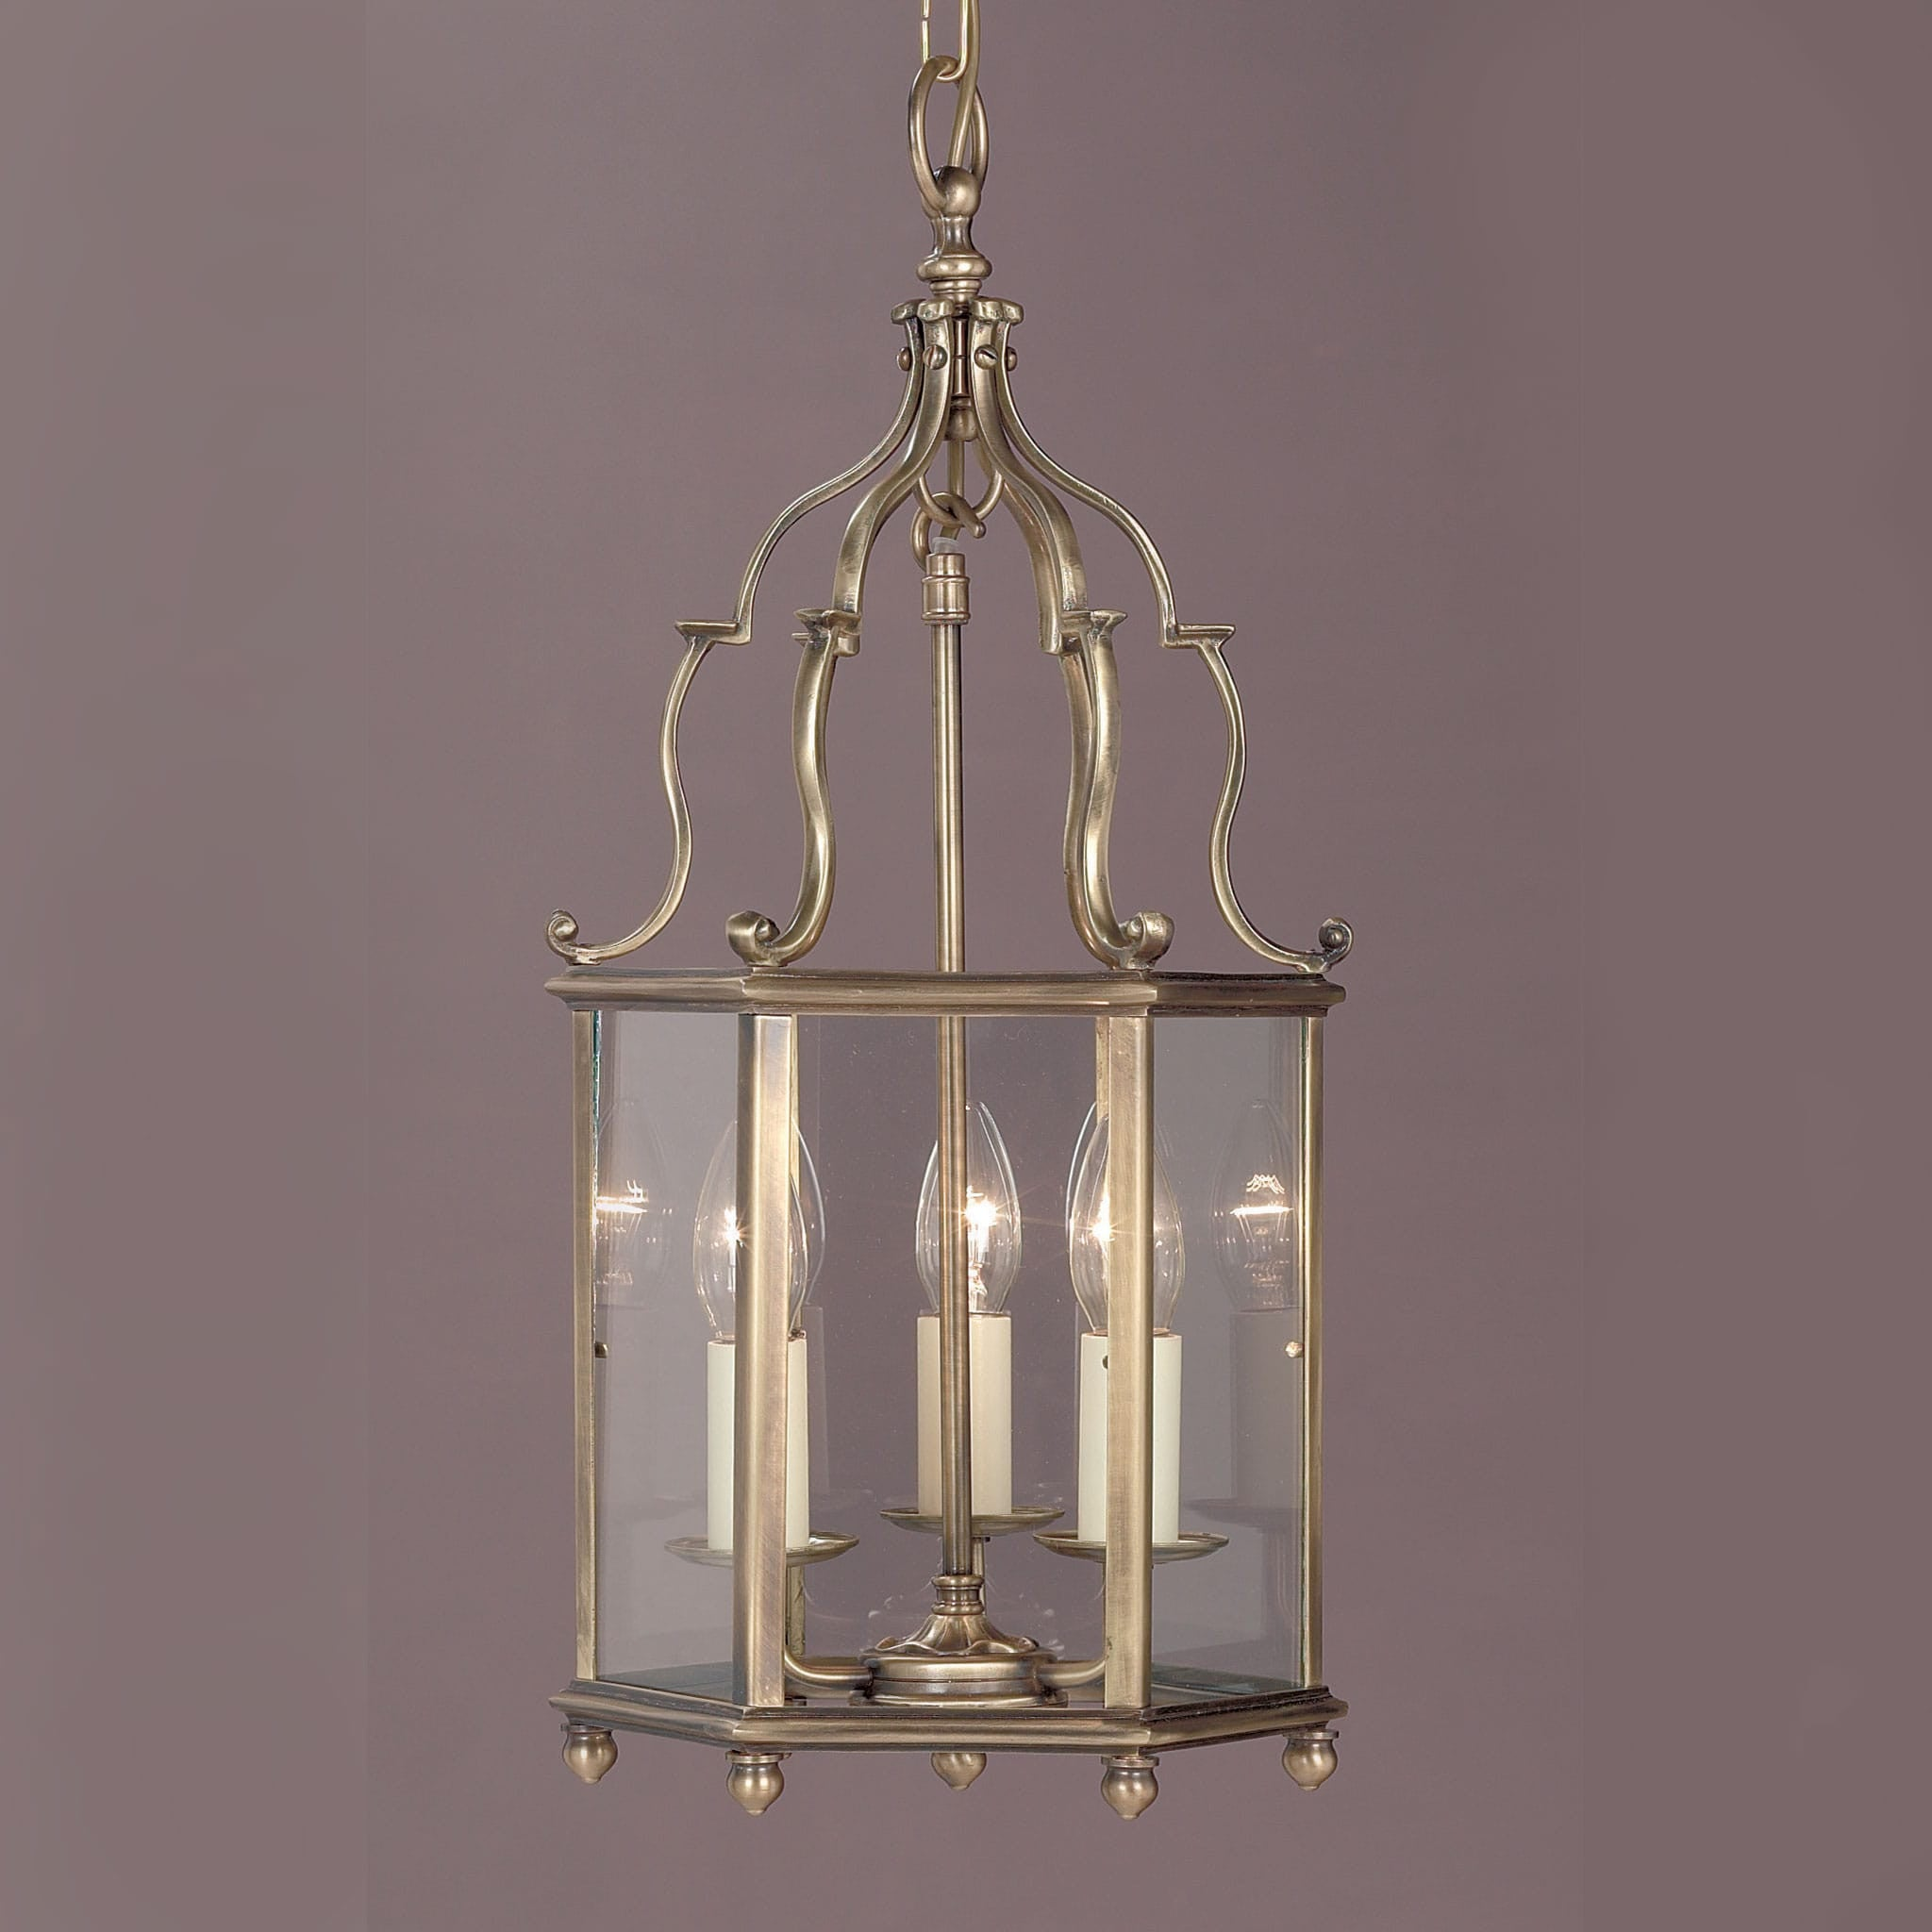 pendant in leon polished nickel lantern light